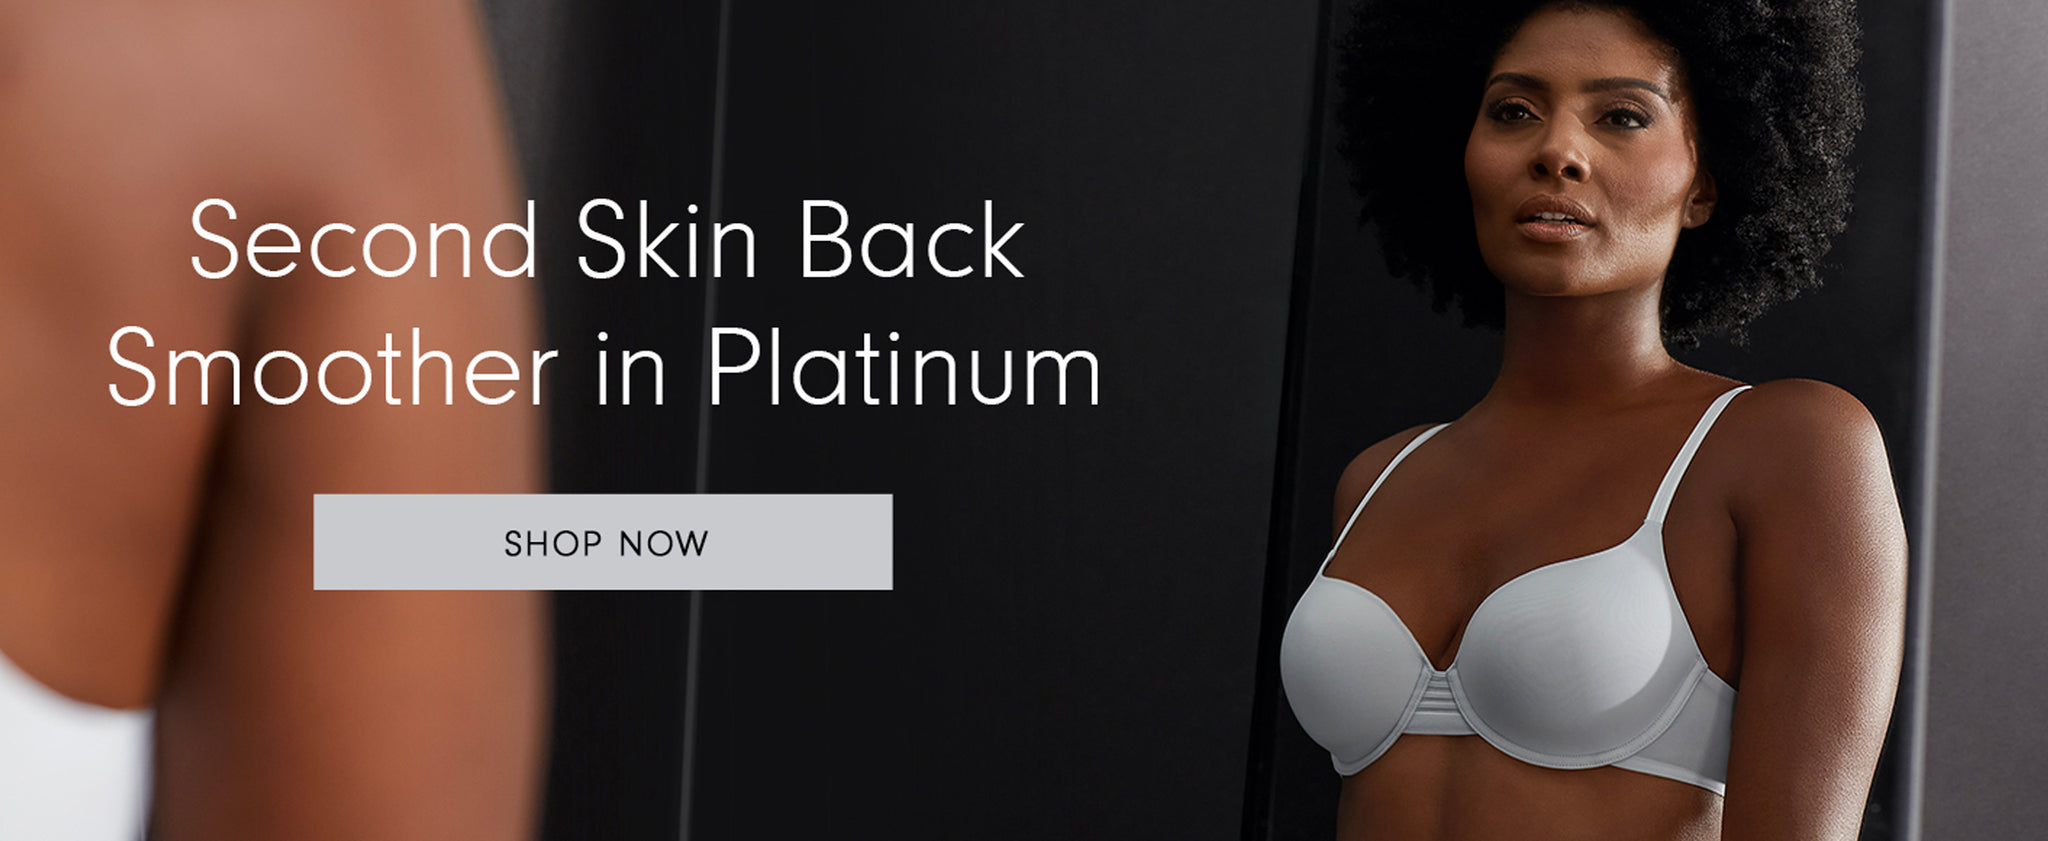 Le Mystere Second Skin Back Smoother in Platinum Bra homepage.